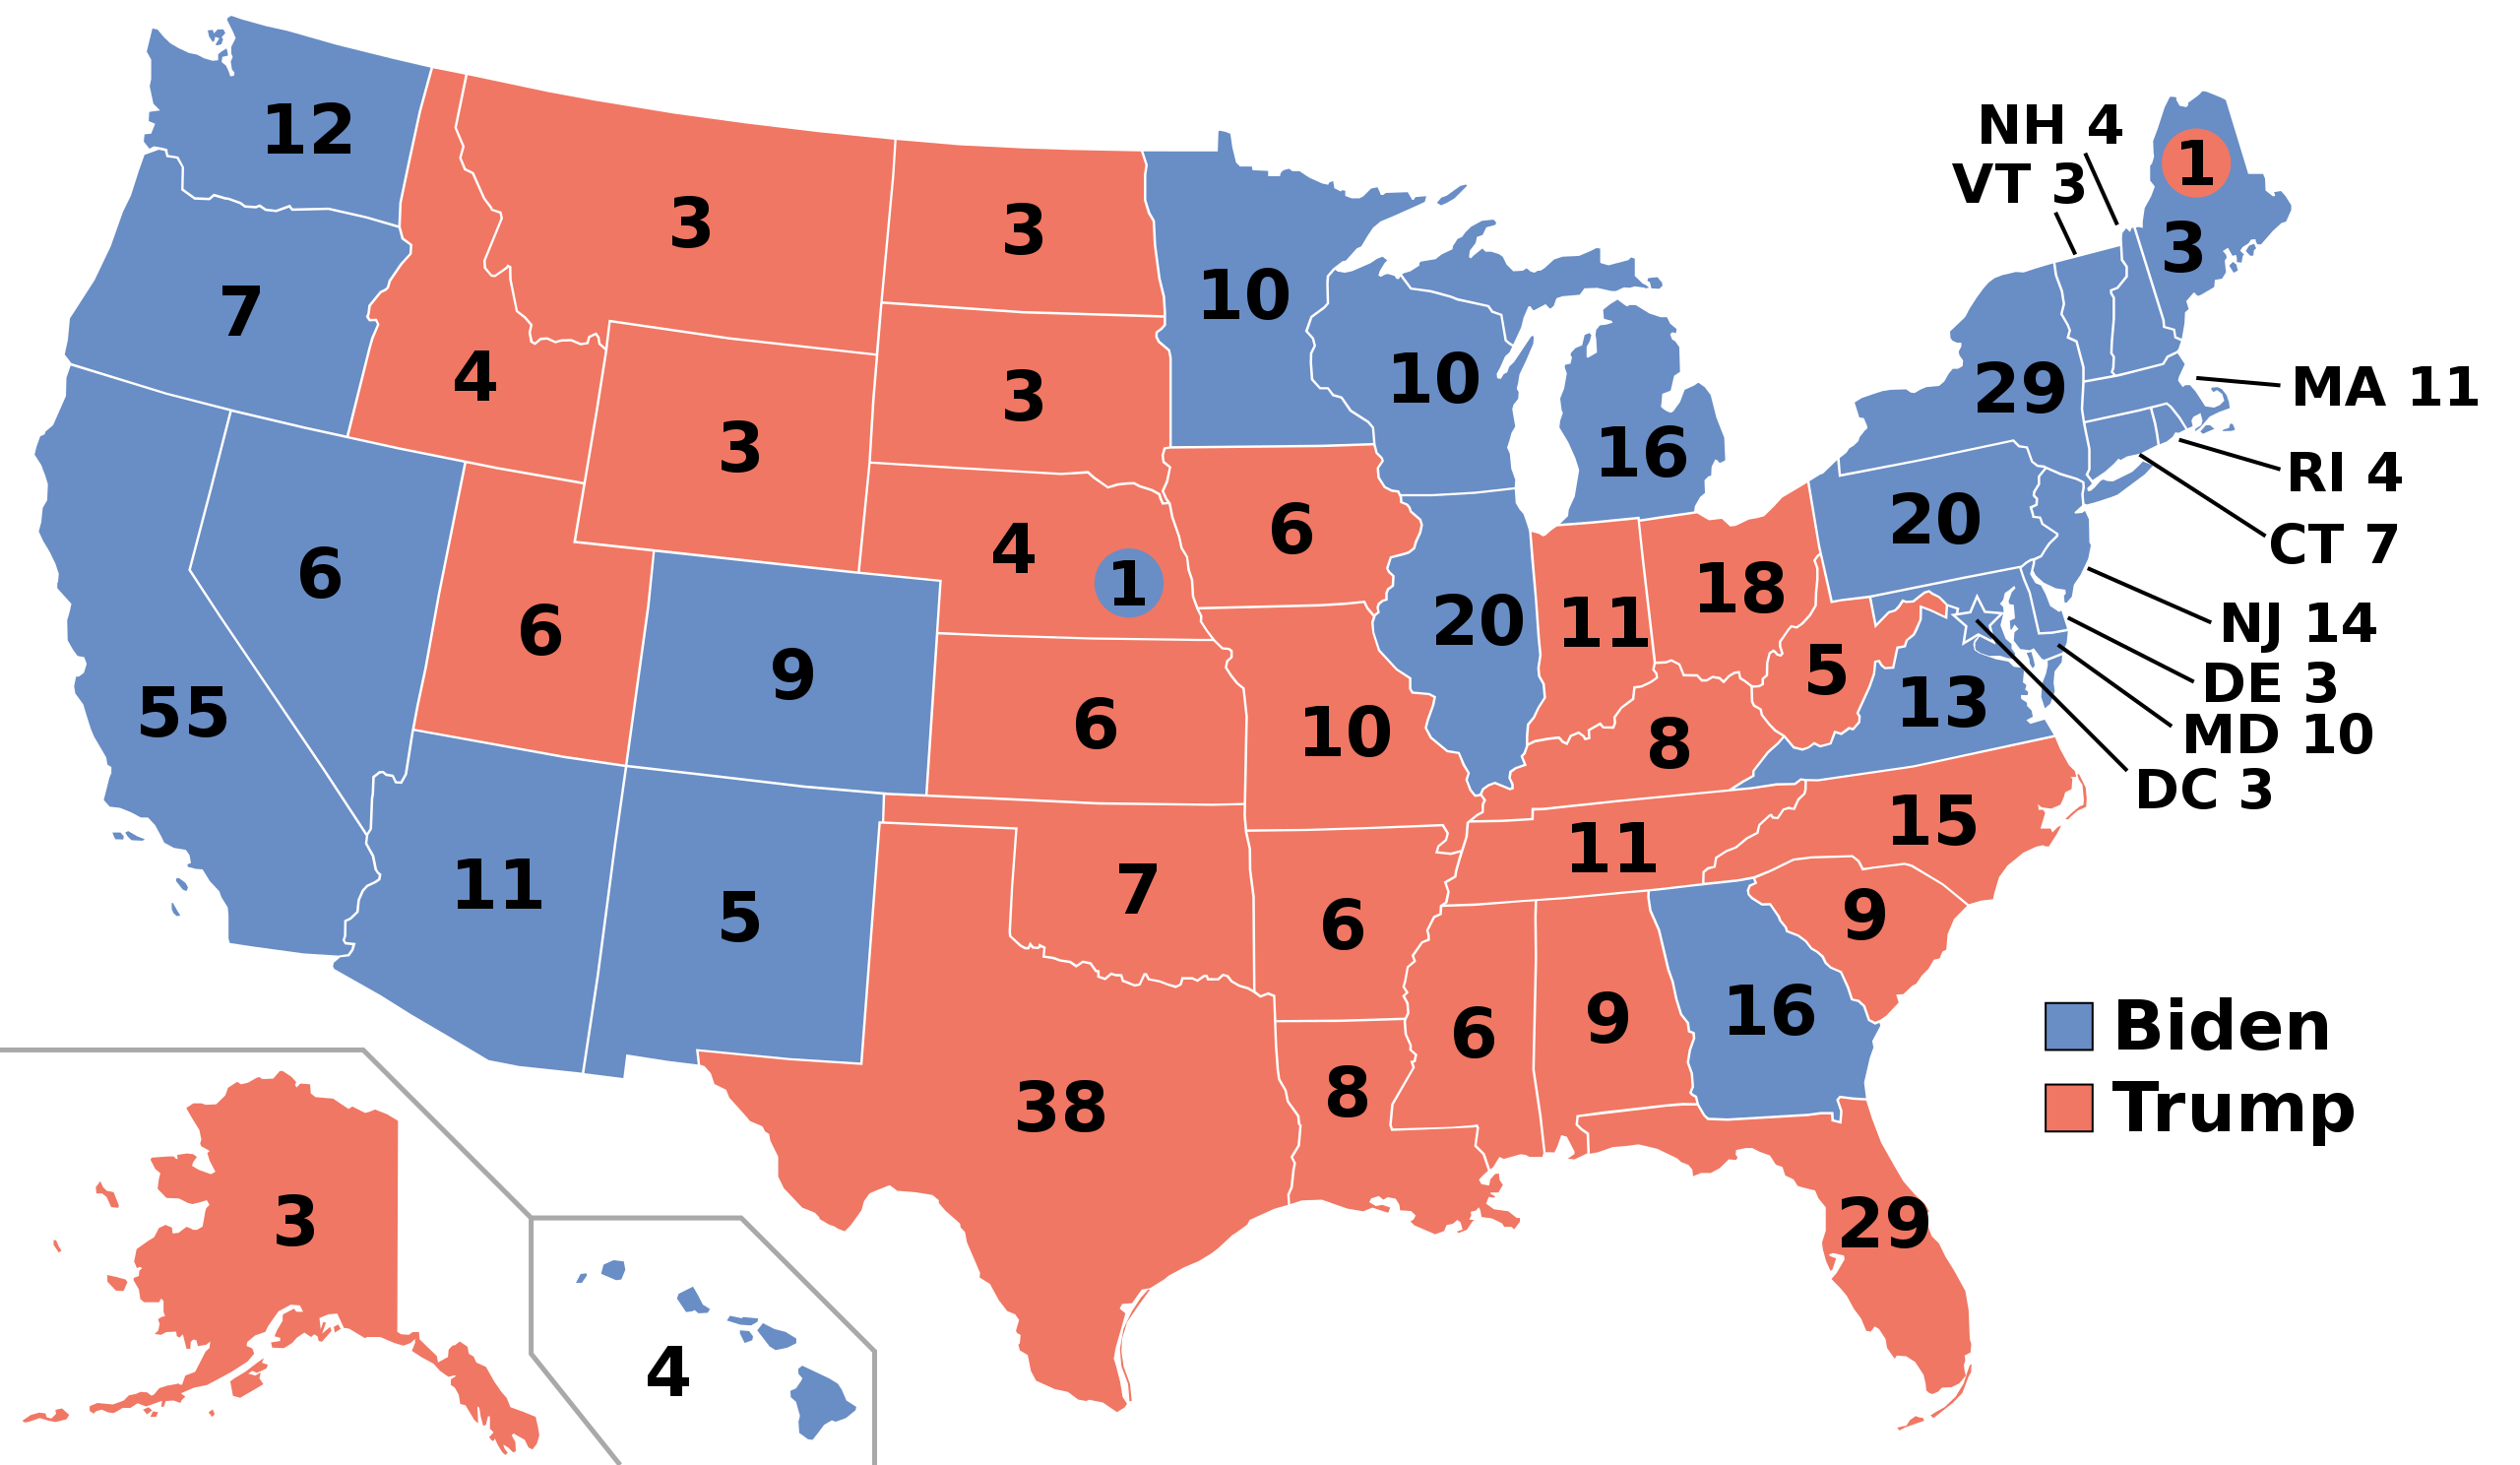 Electoral College Votes by State 2020